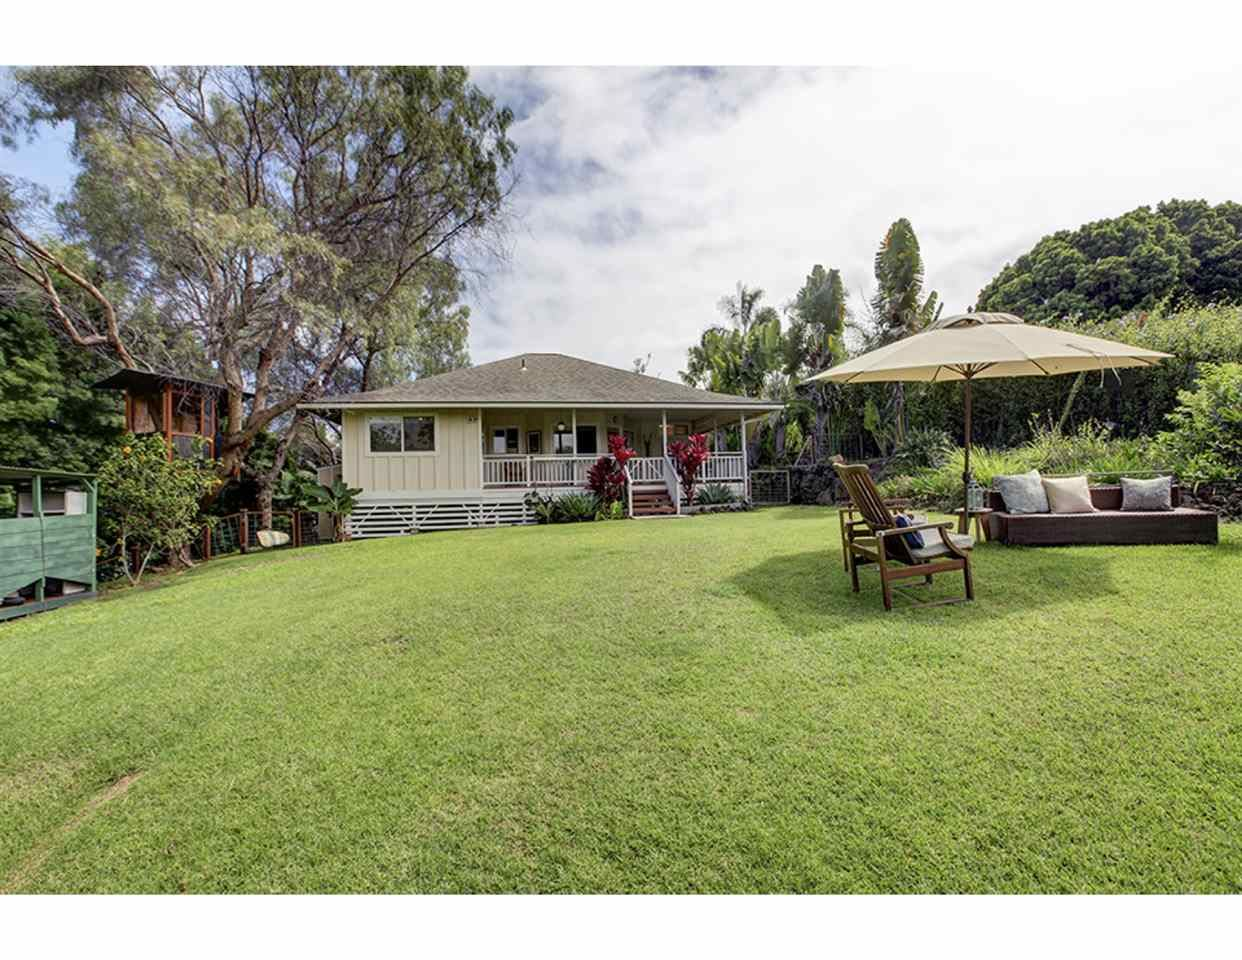 Photo of 4748 Kula Hwy #B, Kula, HI 96790 (MLS # 386734)